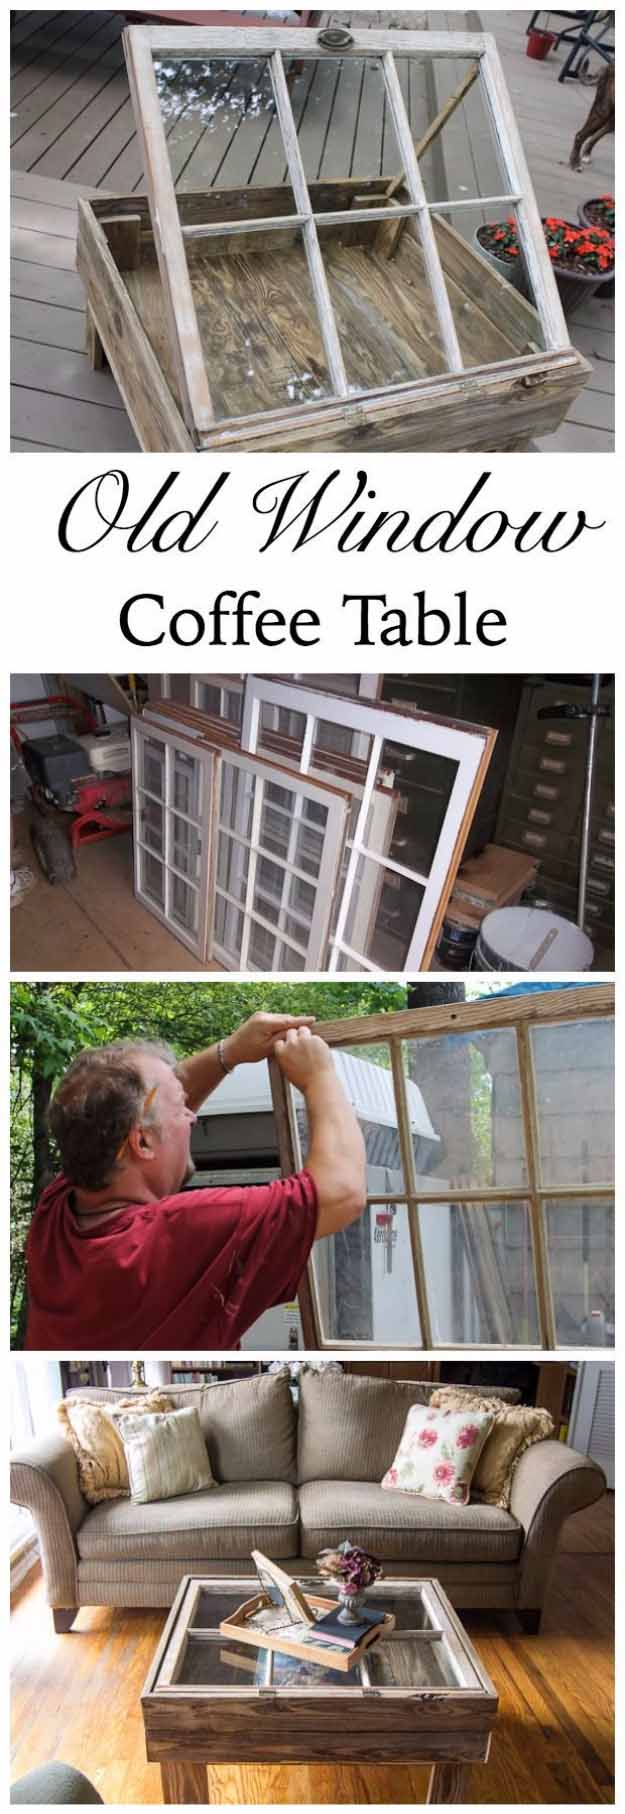 Easy DIY Furniture Ideas | Upcycling Projects with Old Windows | DIY Rustic Coffee Table Ideas | DIY Projects and Crafts by DIY JOY #coffeetables #diyfurniture